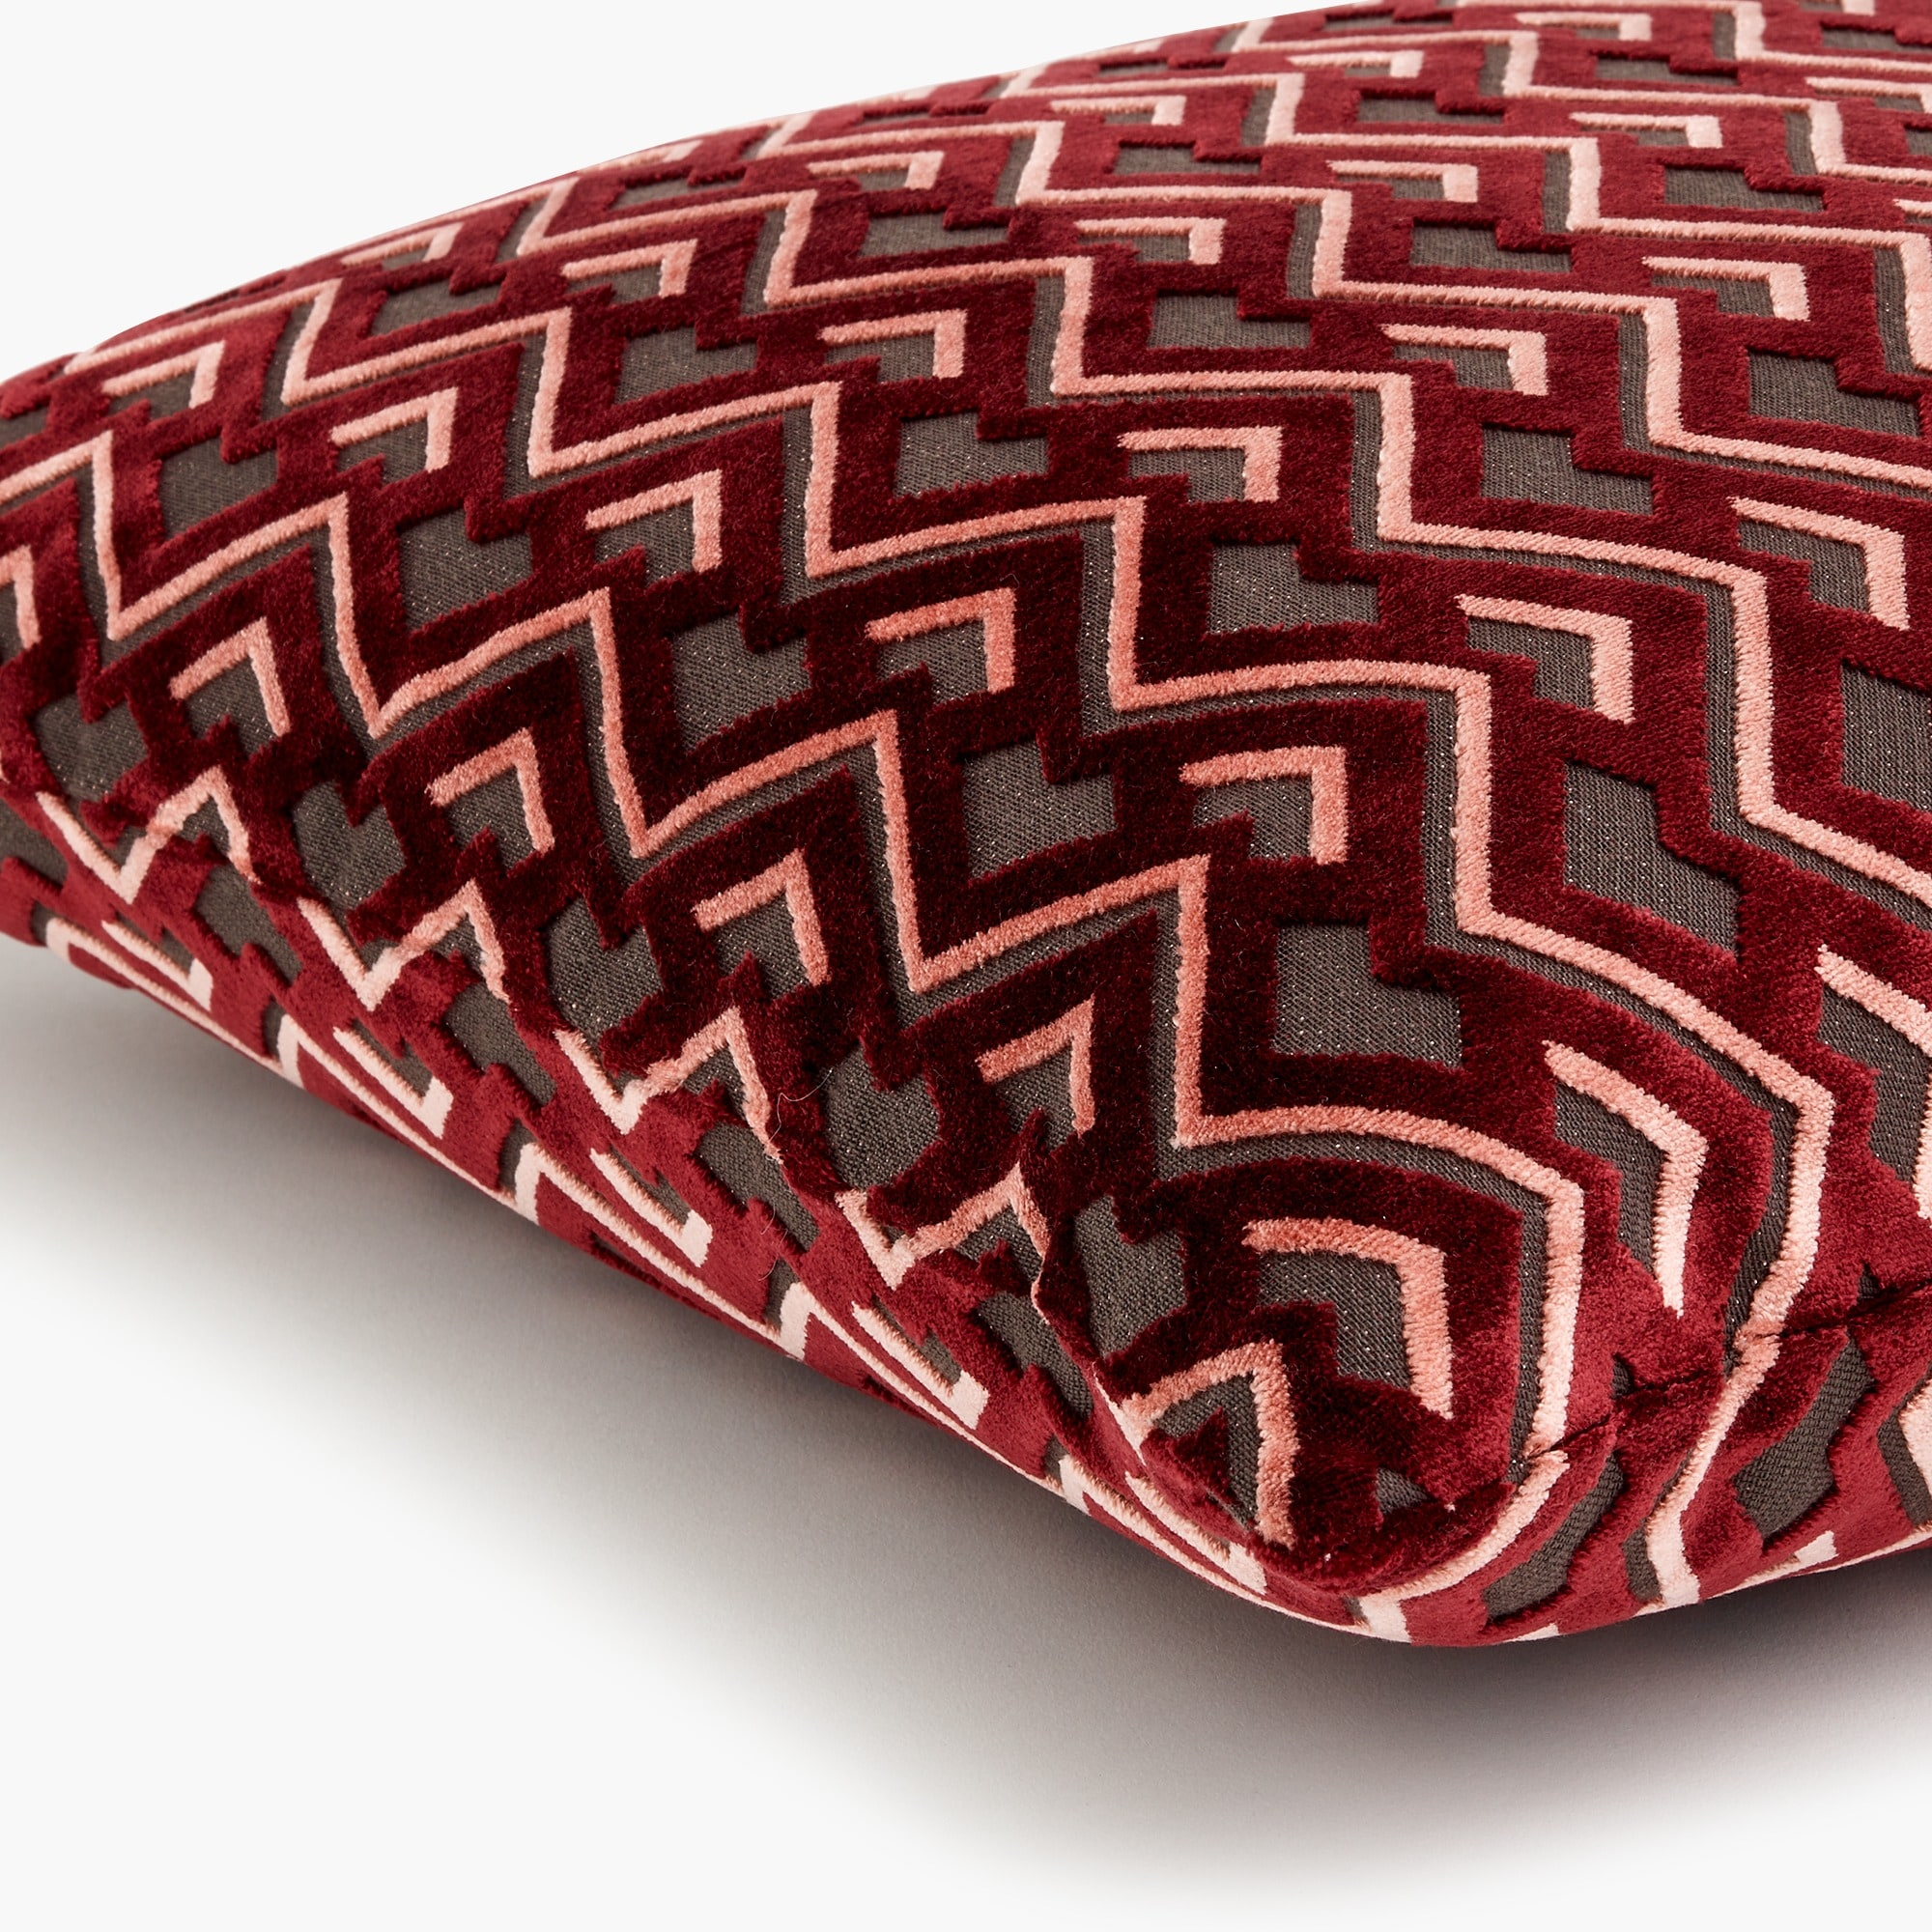 Image 2 for Compono velvet pillow in zigzag pattern